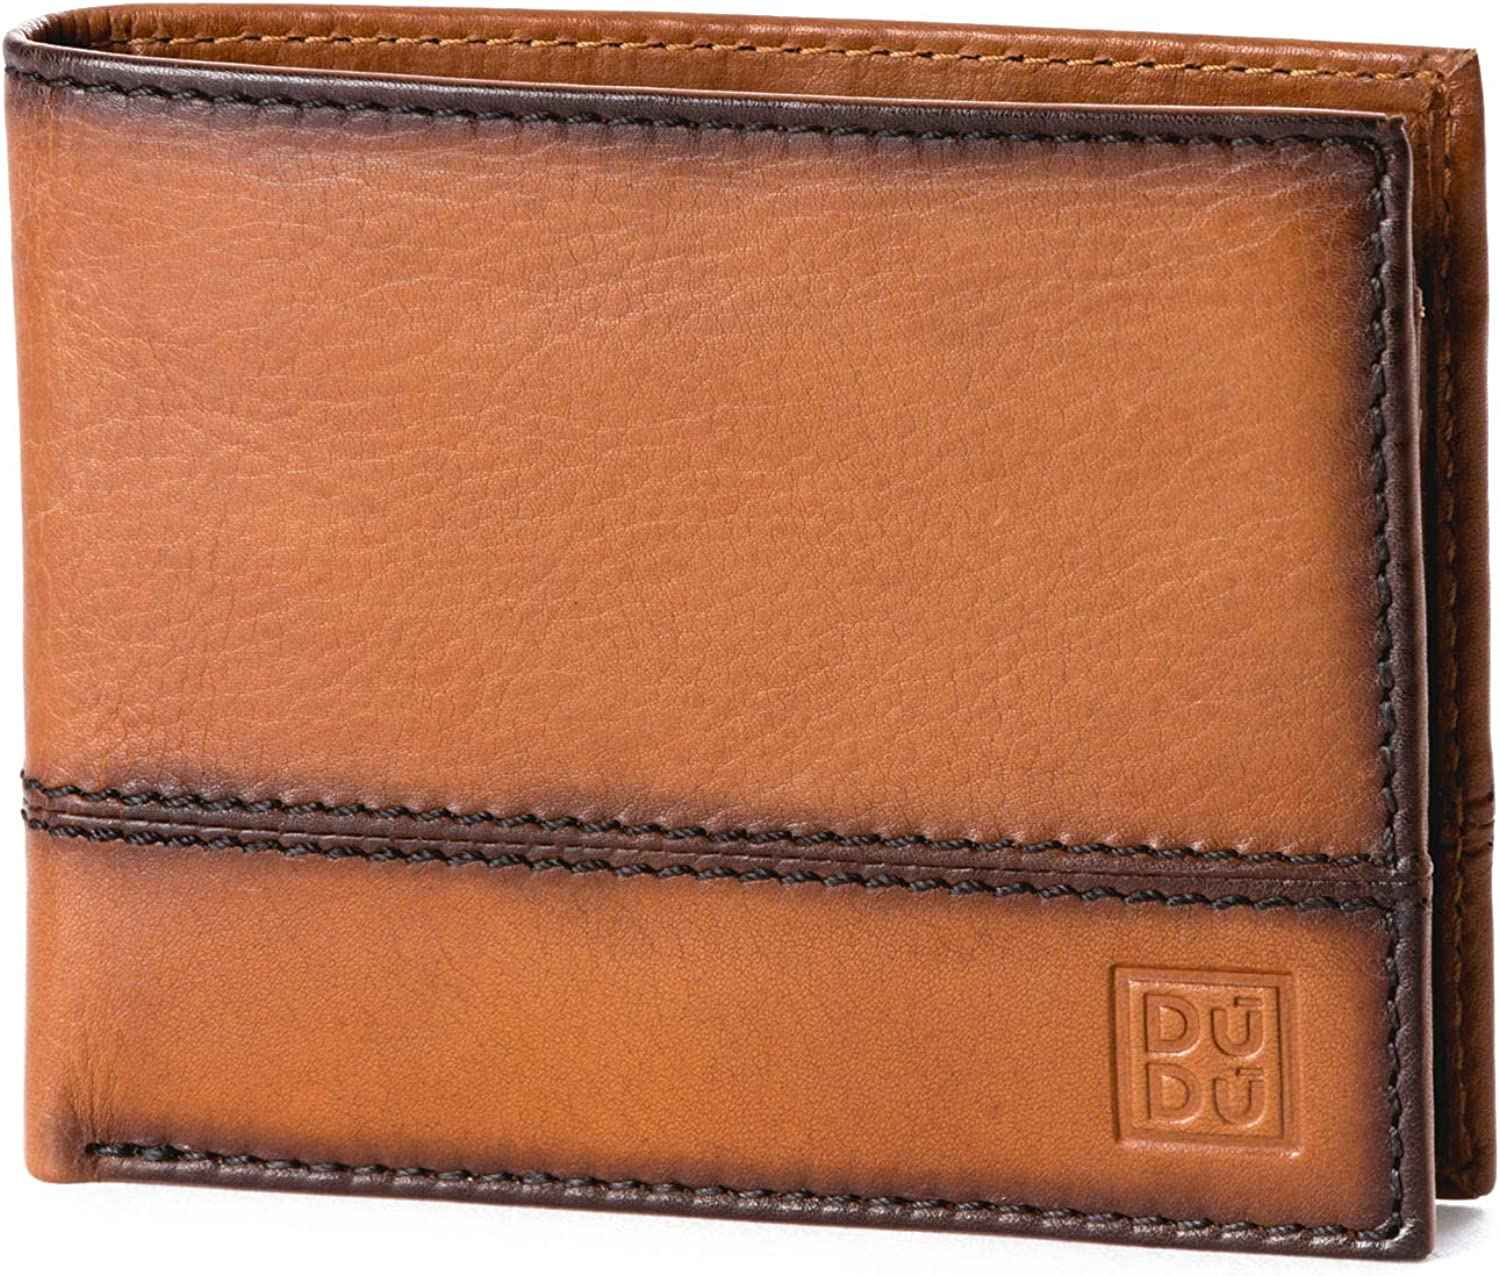 Leather Wallet with Coin Pocket and Credit Card Holder & ID Window DUDU Light Brown